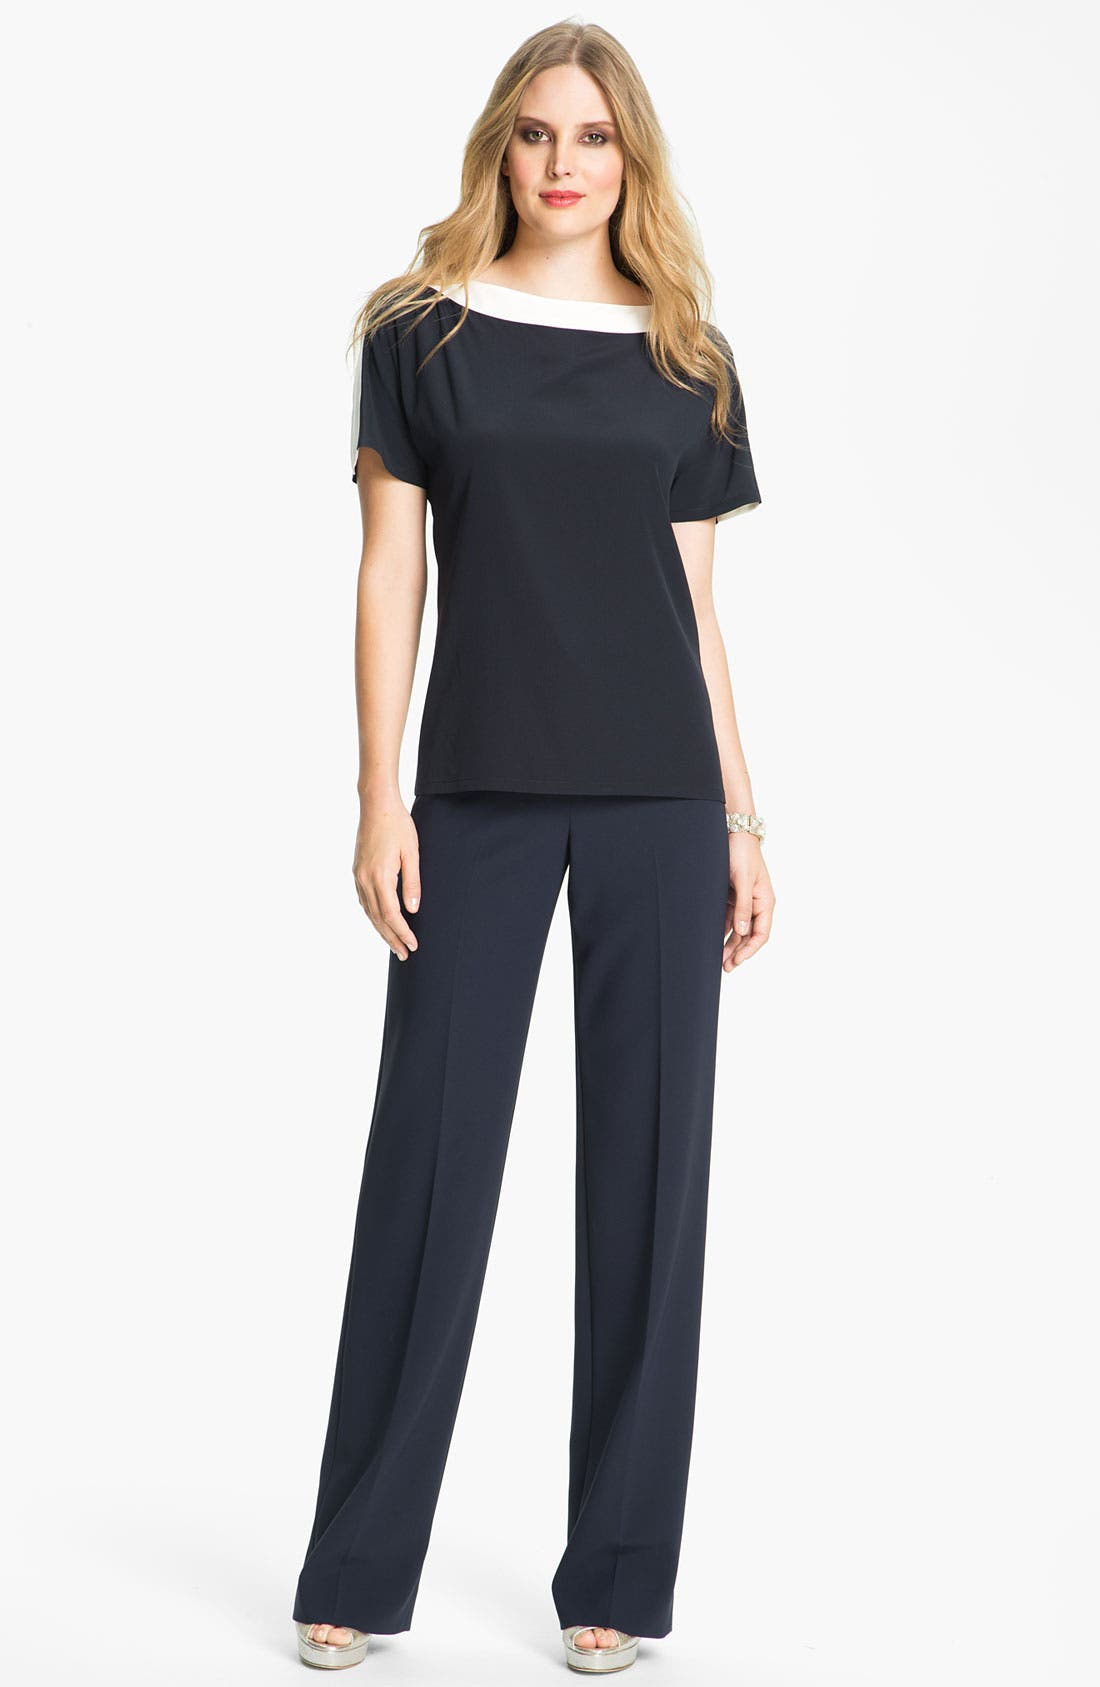 Main Image - St. John Collection Blouse & Pants